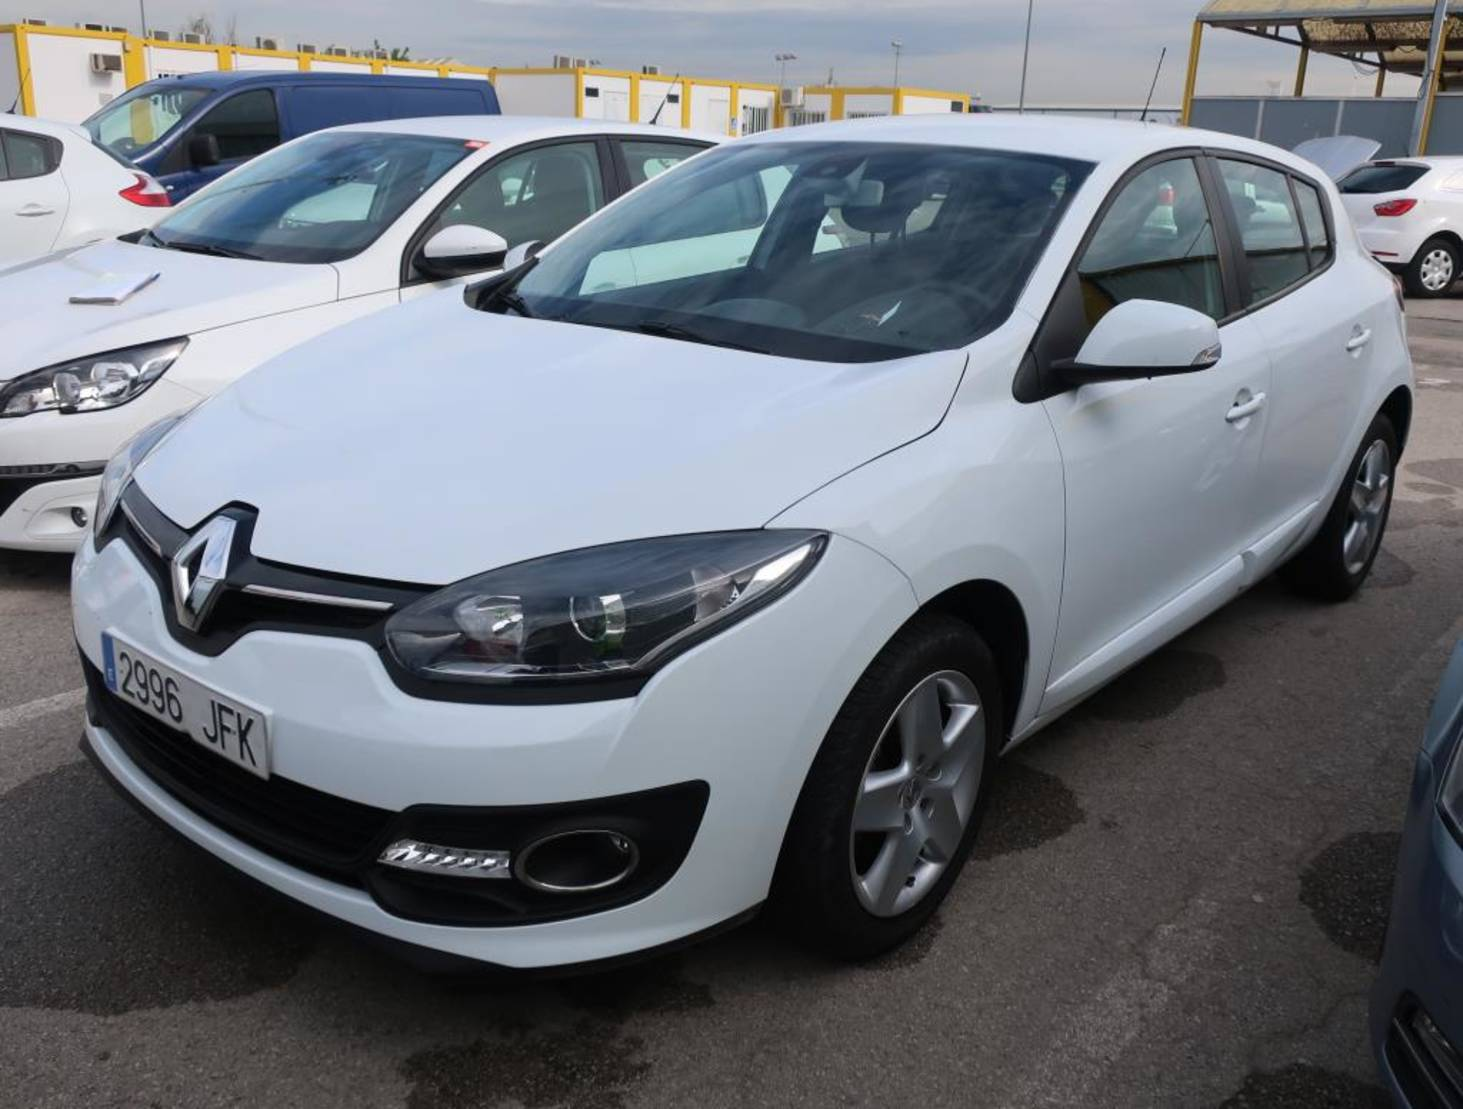 Renault Mégane 1.5 Dci Business Eco2 detail1